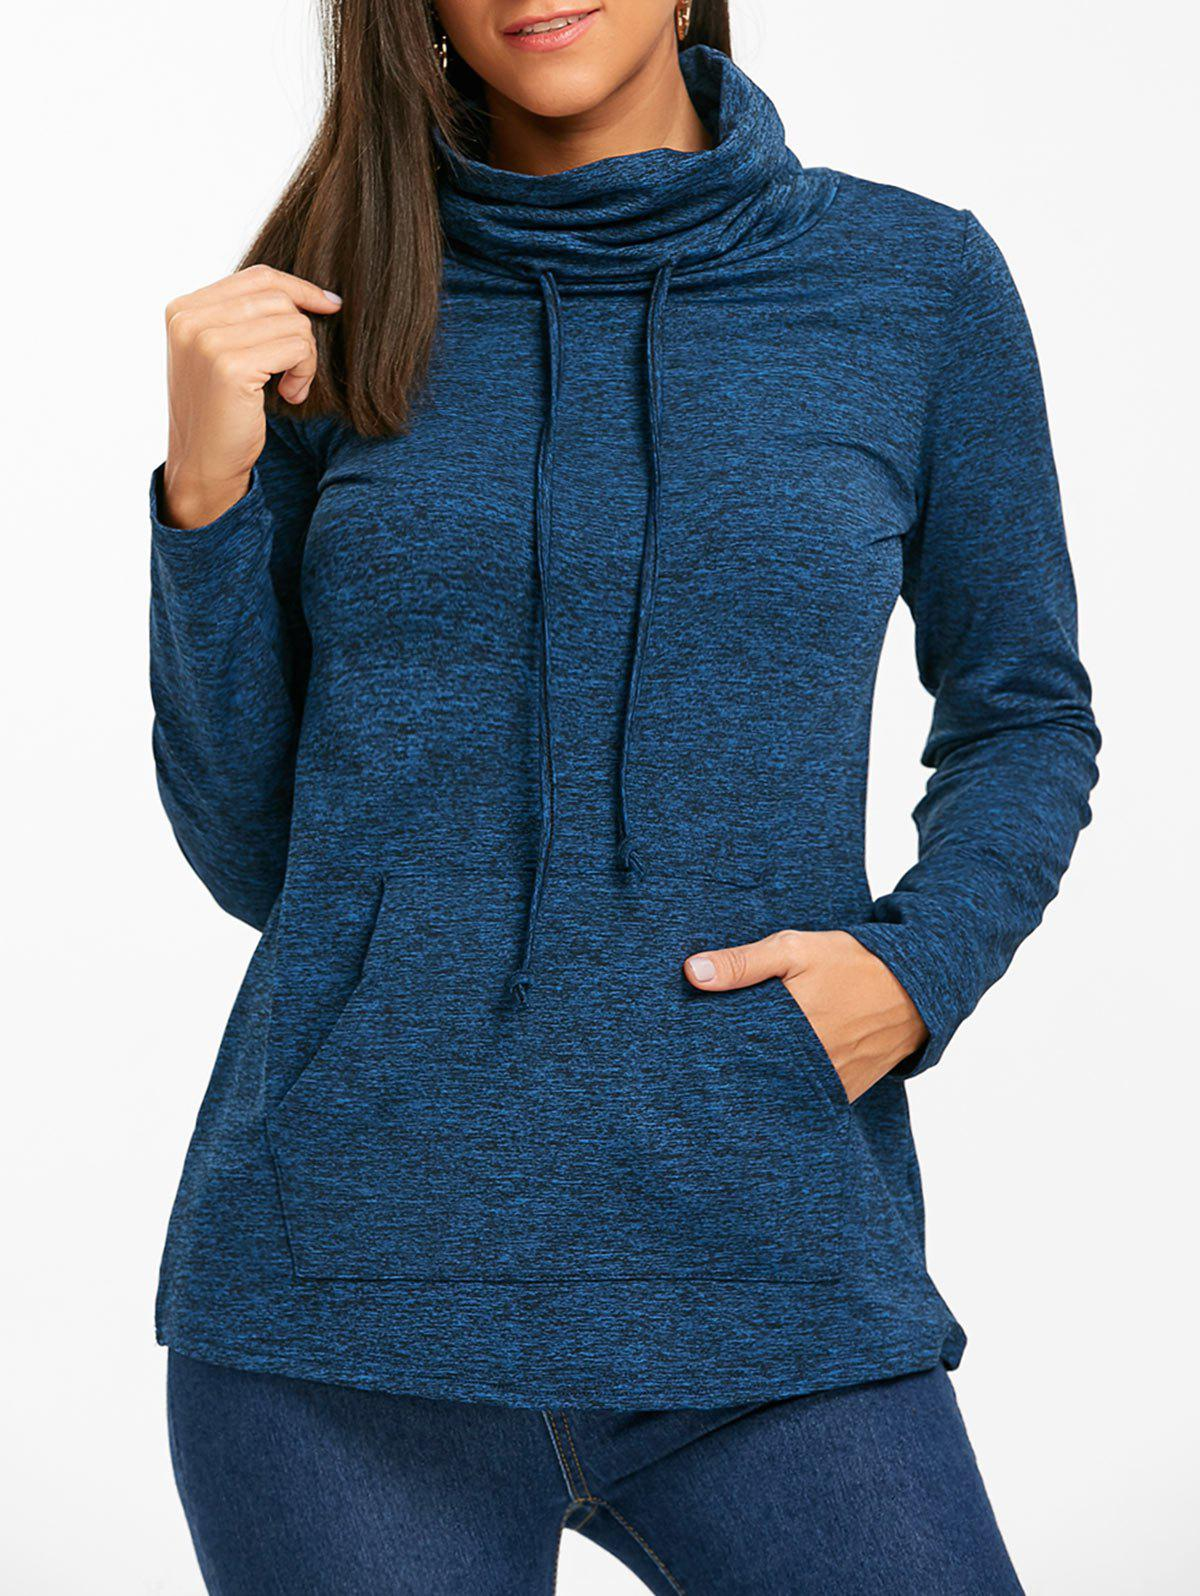 Cowl Neck Heathered Drawstring Sweatshirt - BLUE 2XL